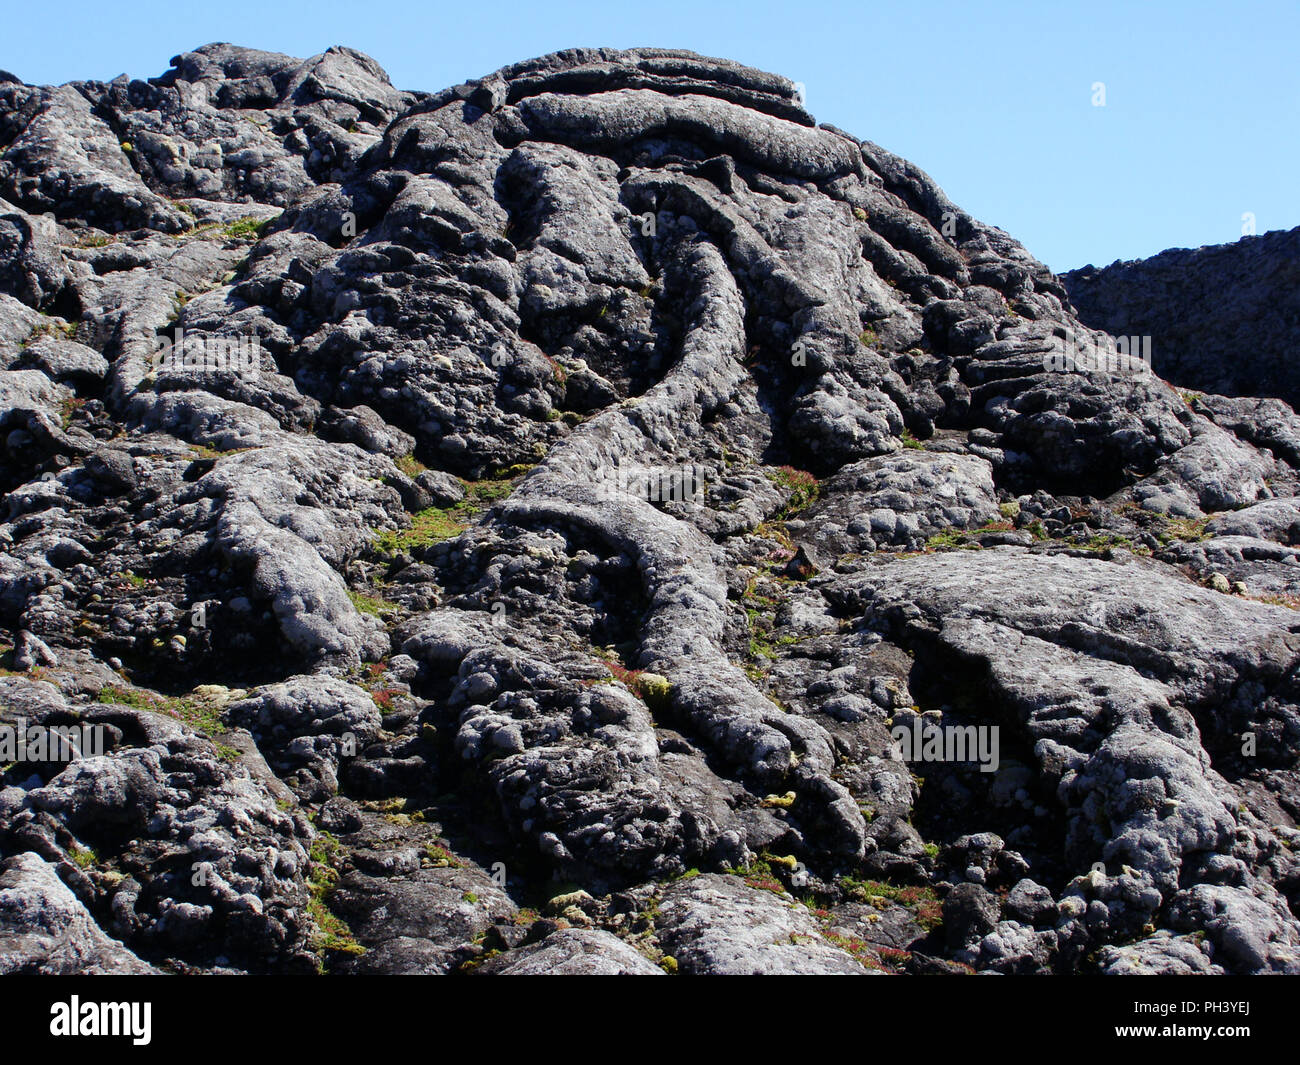 Lava fields at the summit of Pico volcano, in the Azores archipelago (Mid-Atlantic, Portugal) - Stock Image